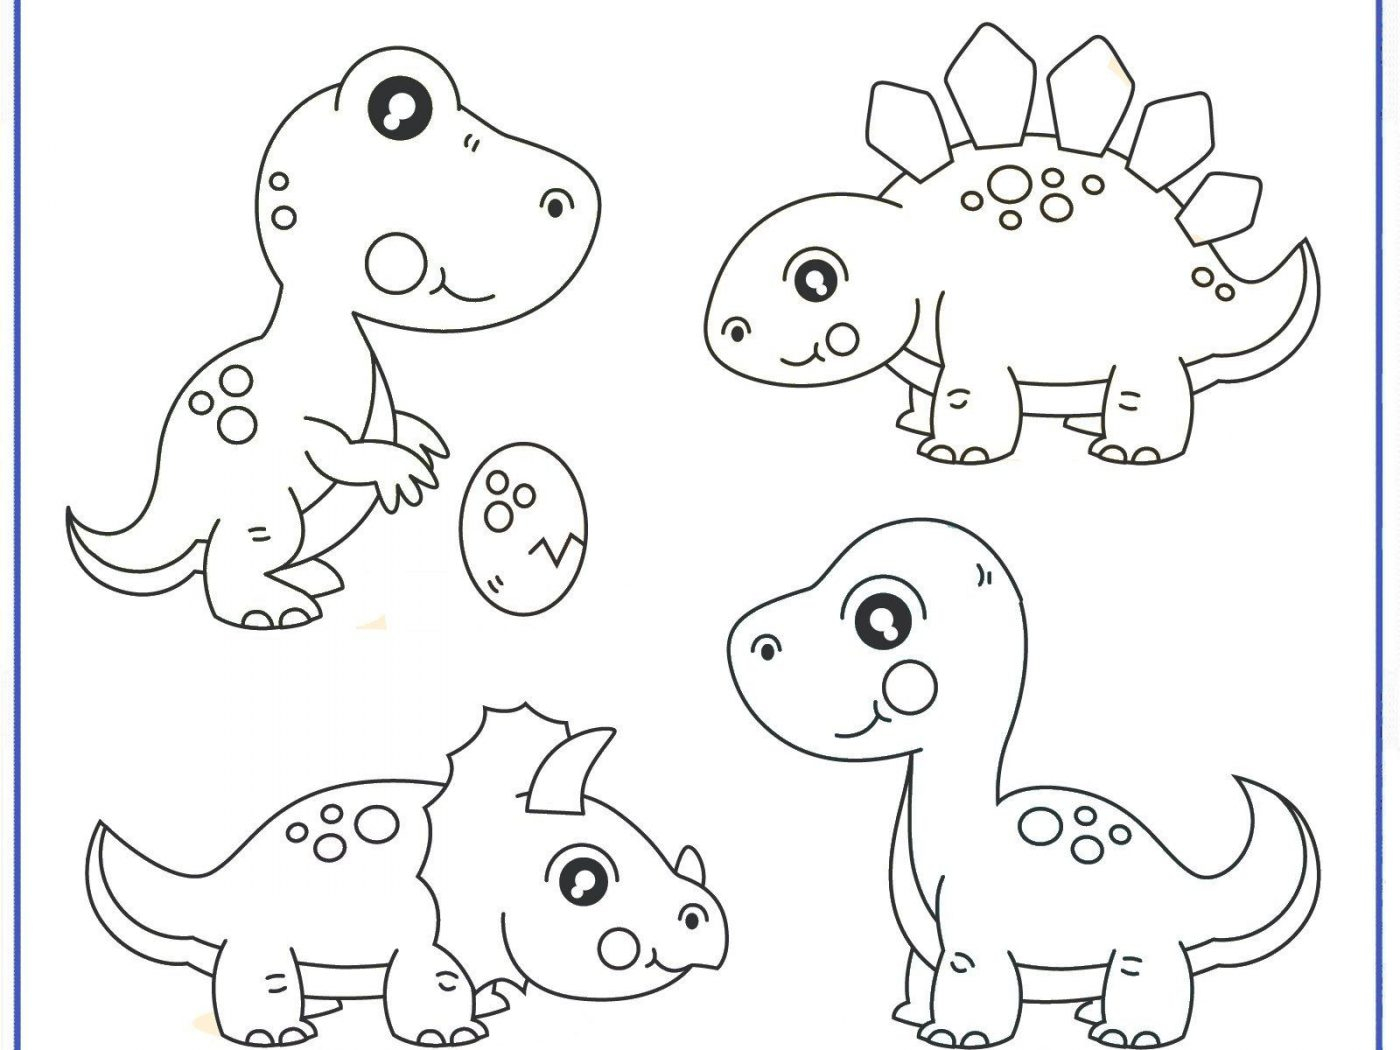 Printable Dinosaur Coloring Pages Dinosaurg Pictures Preschool ...